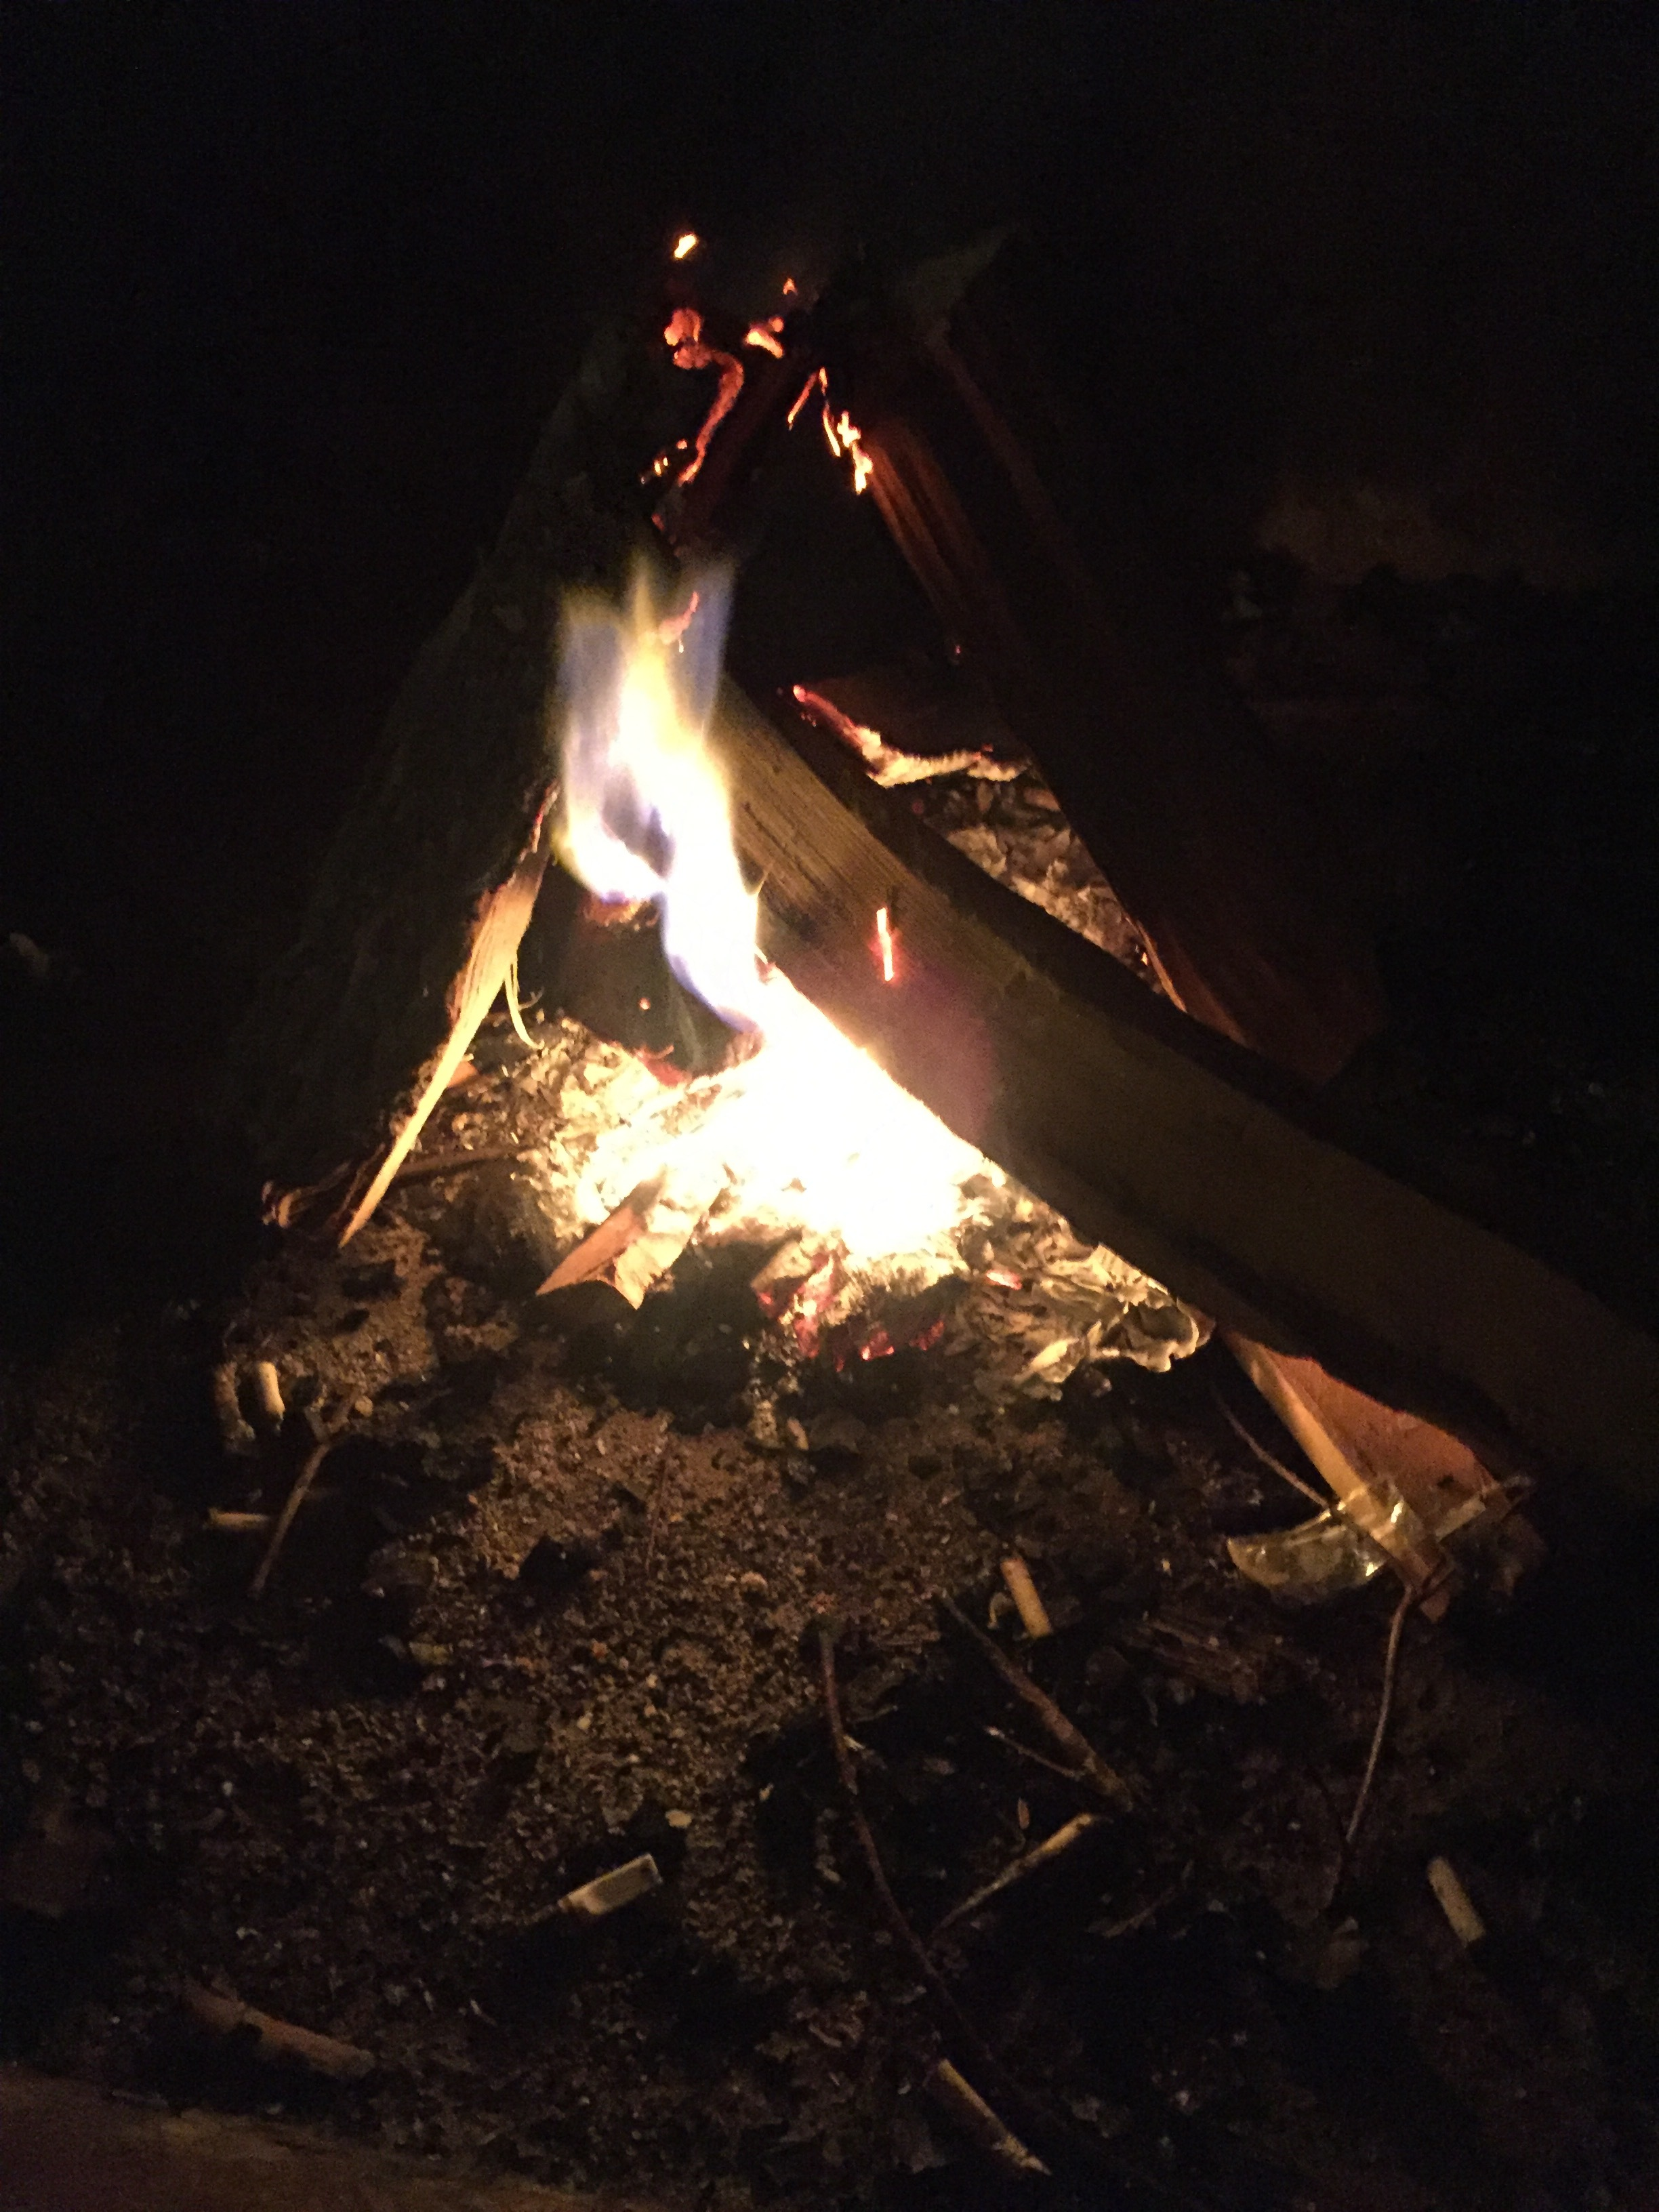 Celebrating the element of fire.